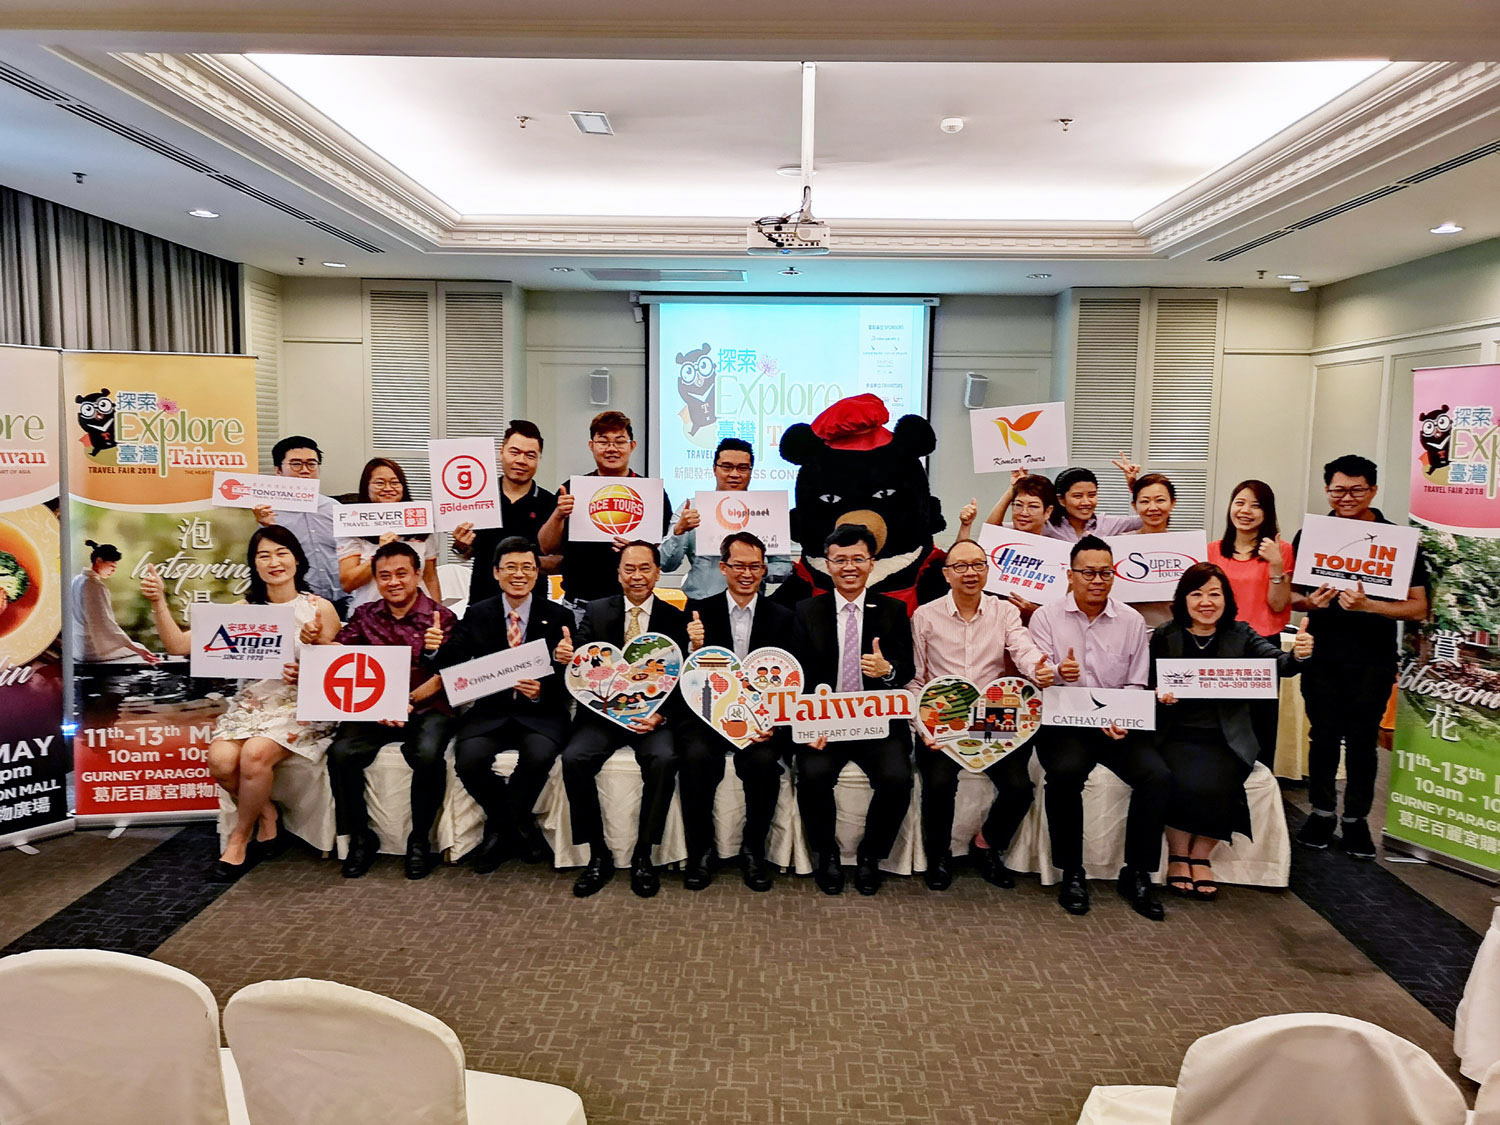 There will be a collaboration of 13 local travel agent partners, together with China Airlines, Cathay Dragon and Genting Cruise Lines, offering special deals for airfare, Taiwan travel and cruises packages.